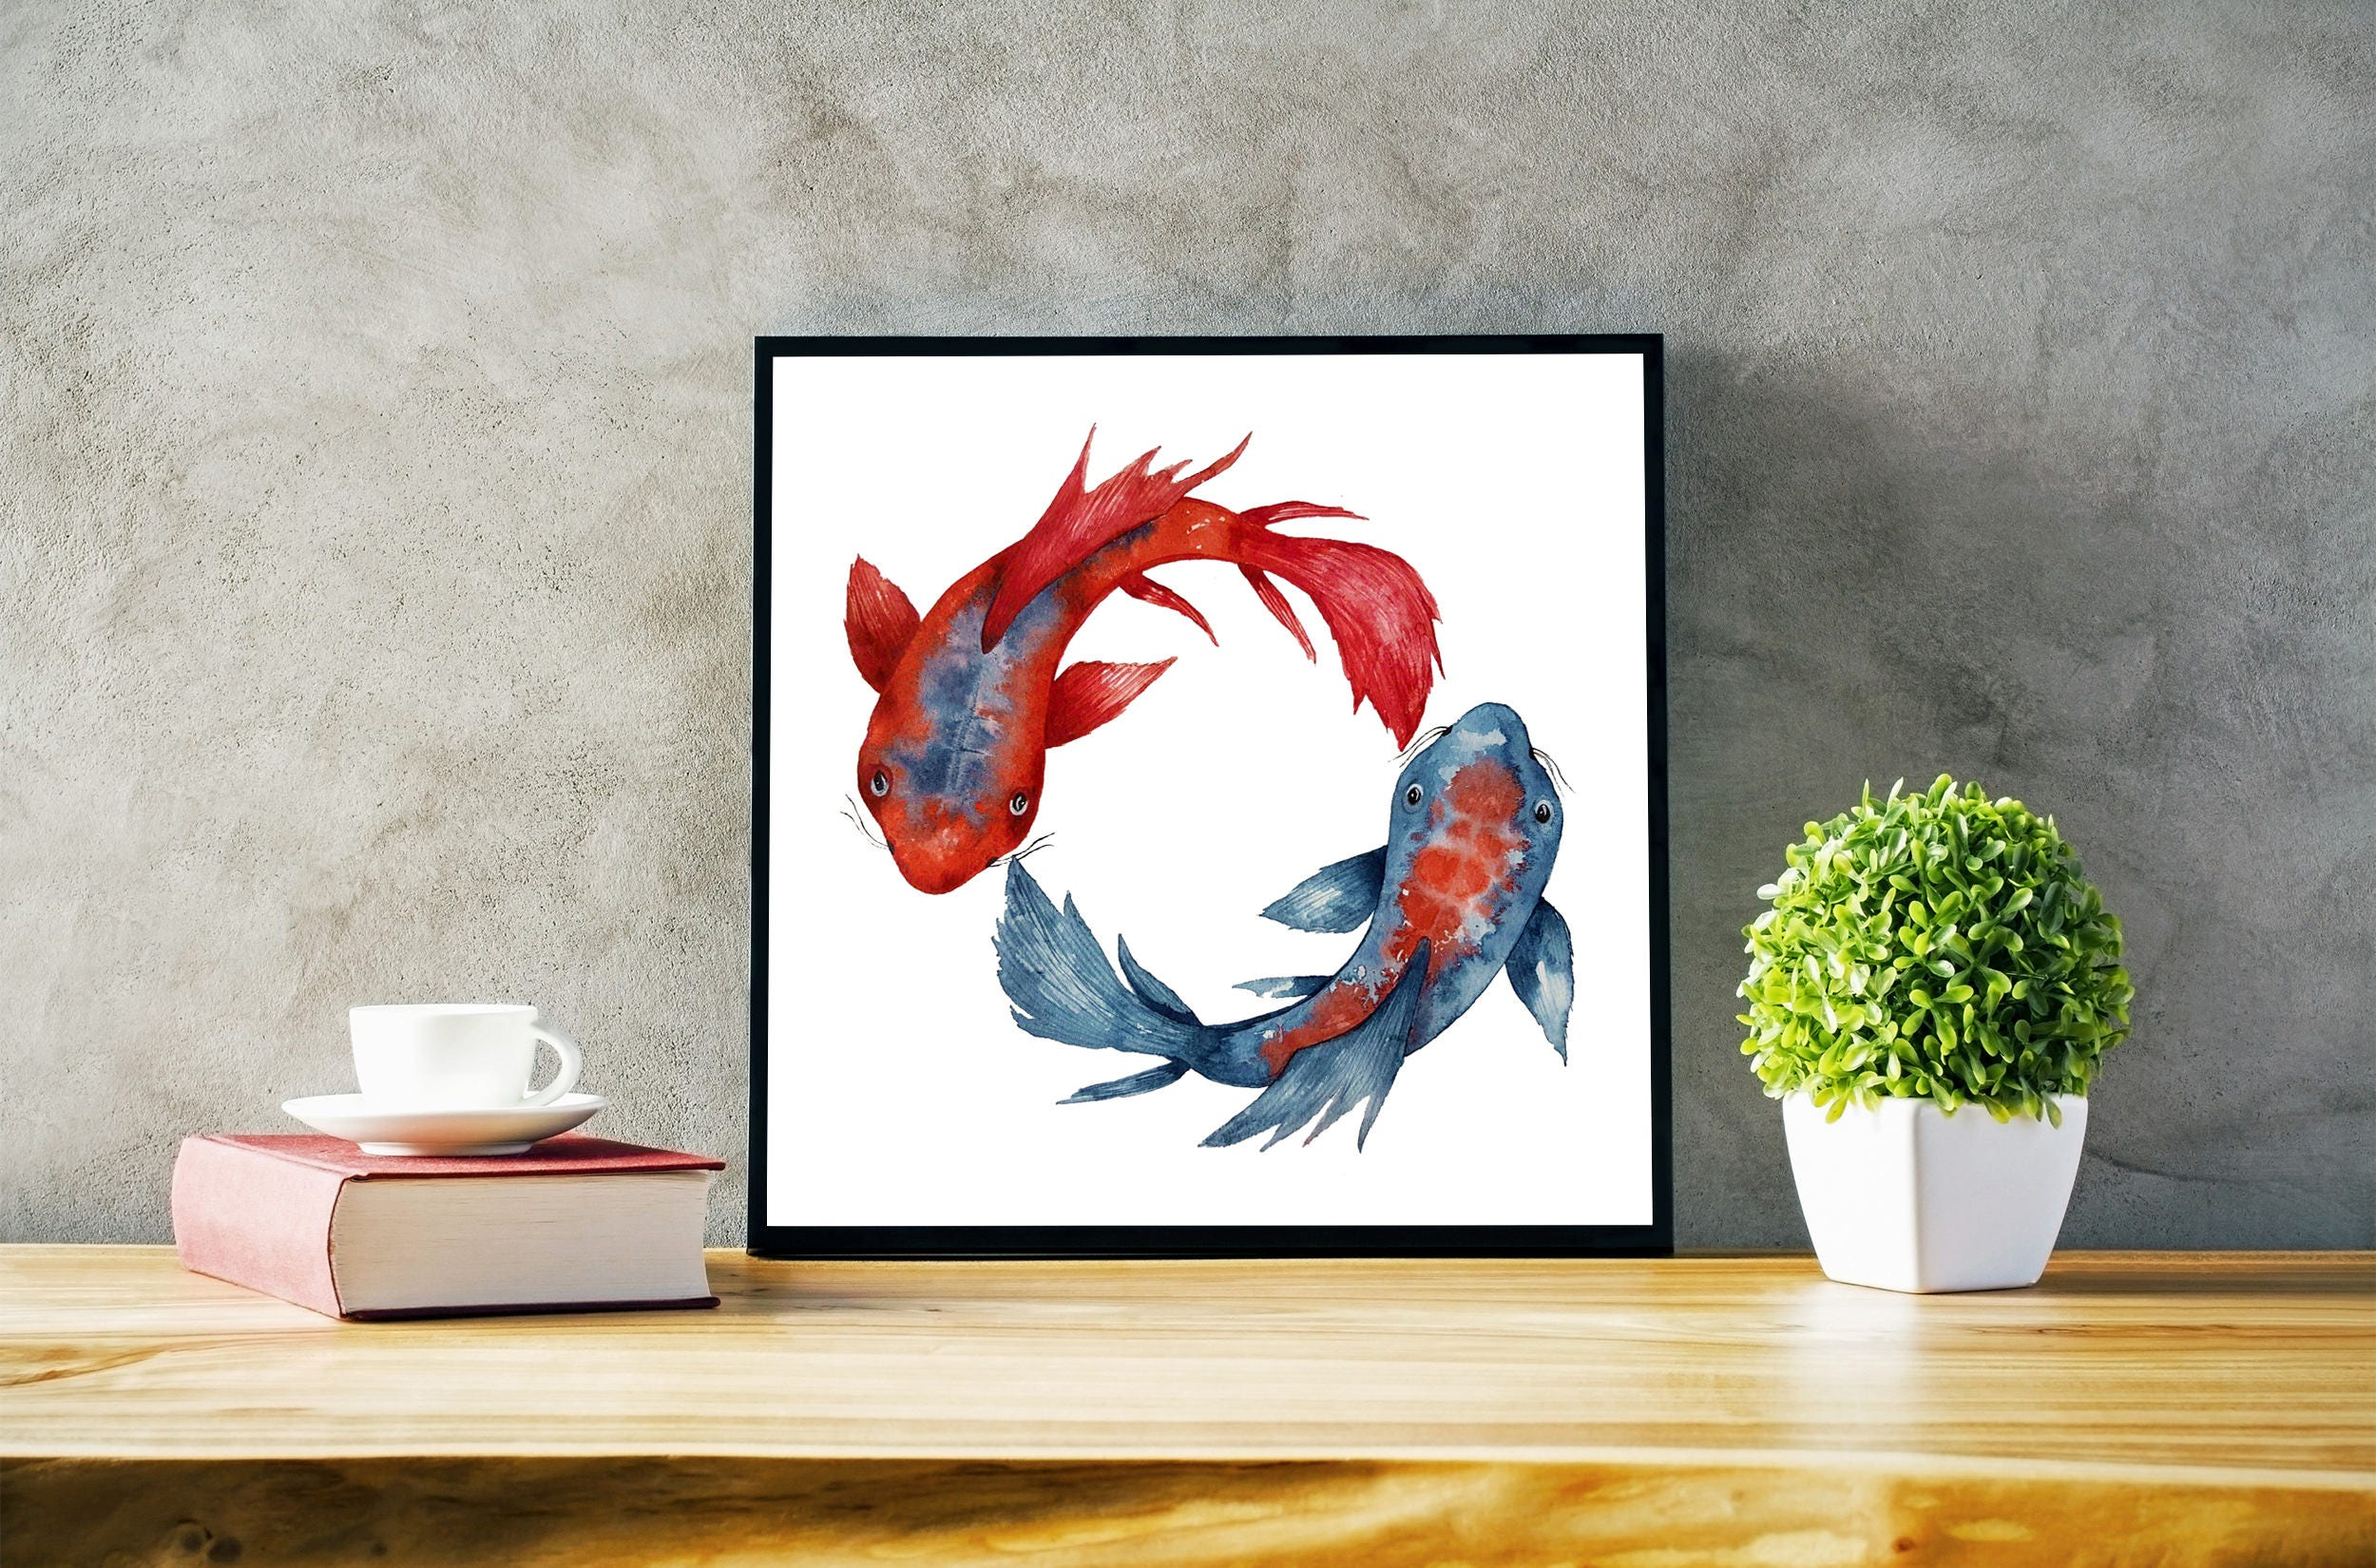 Yin yang koi fish framed poster wall art decor for Koi fish wall decor